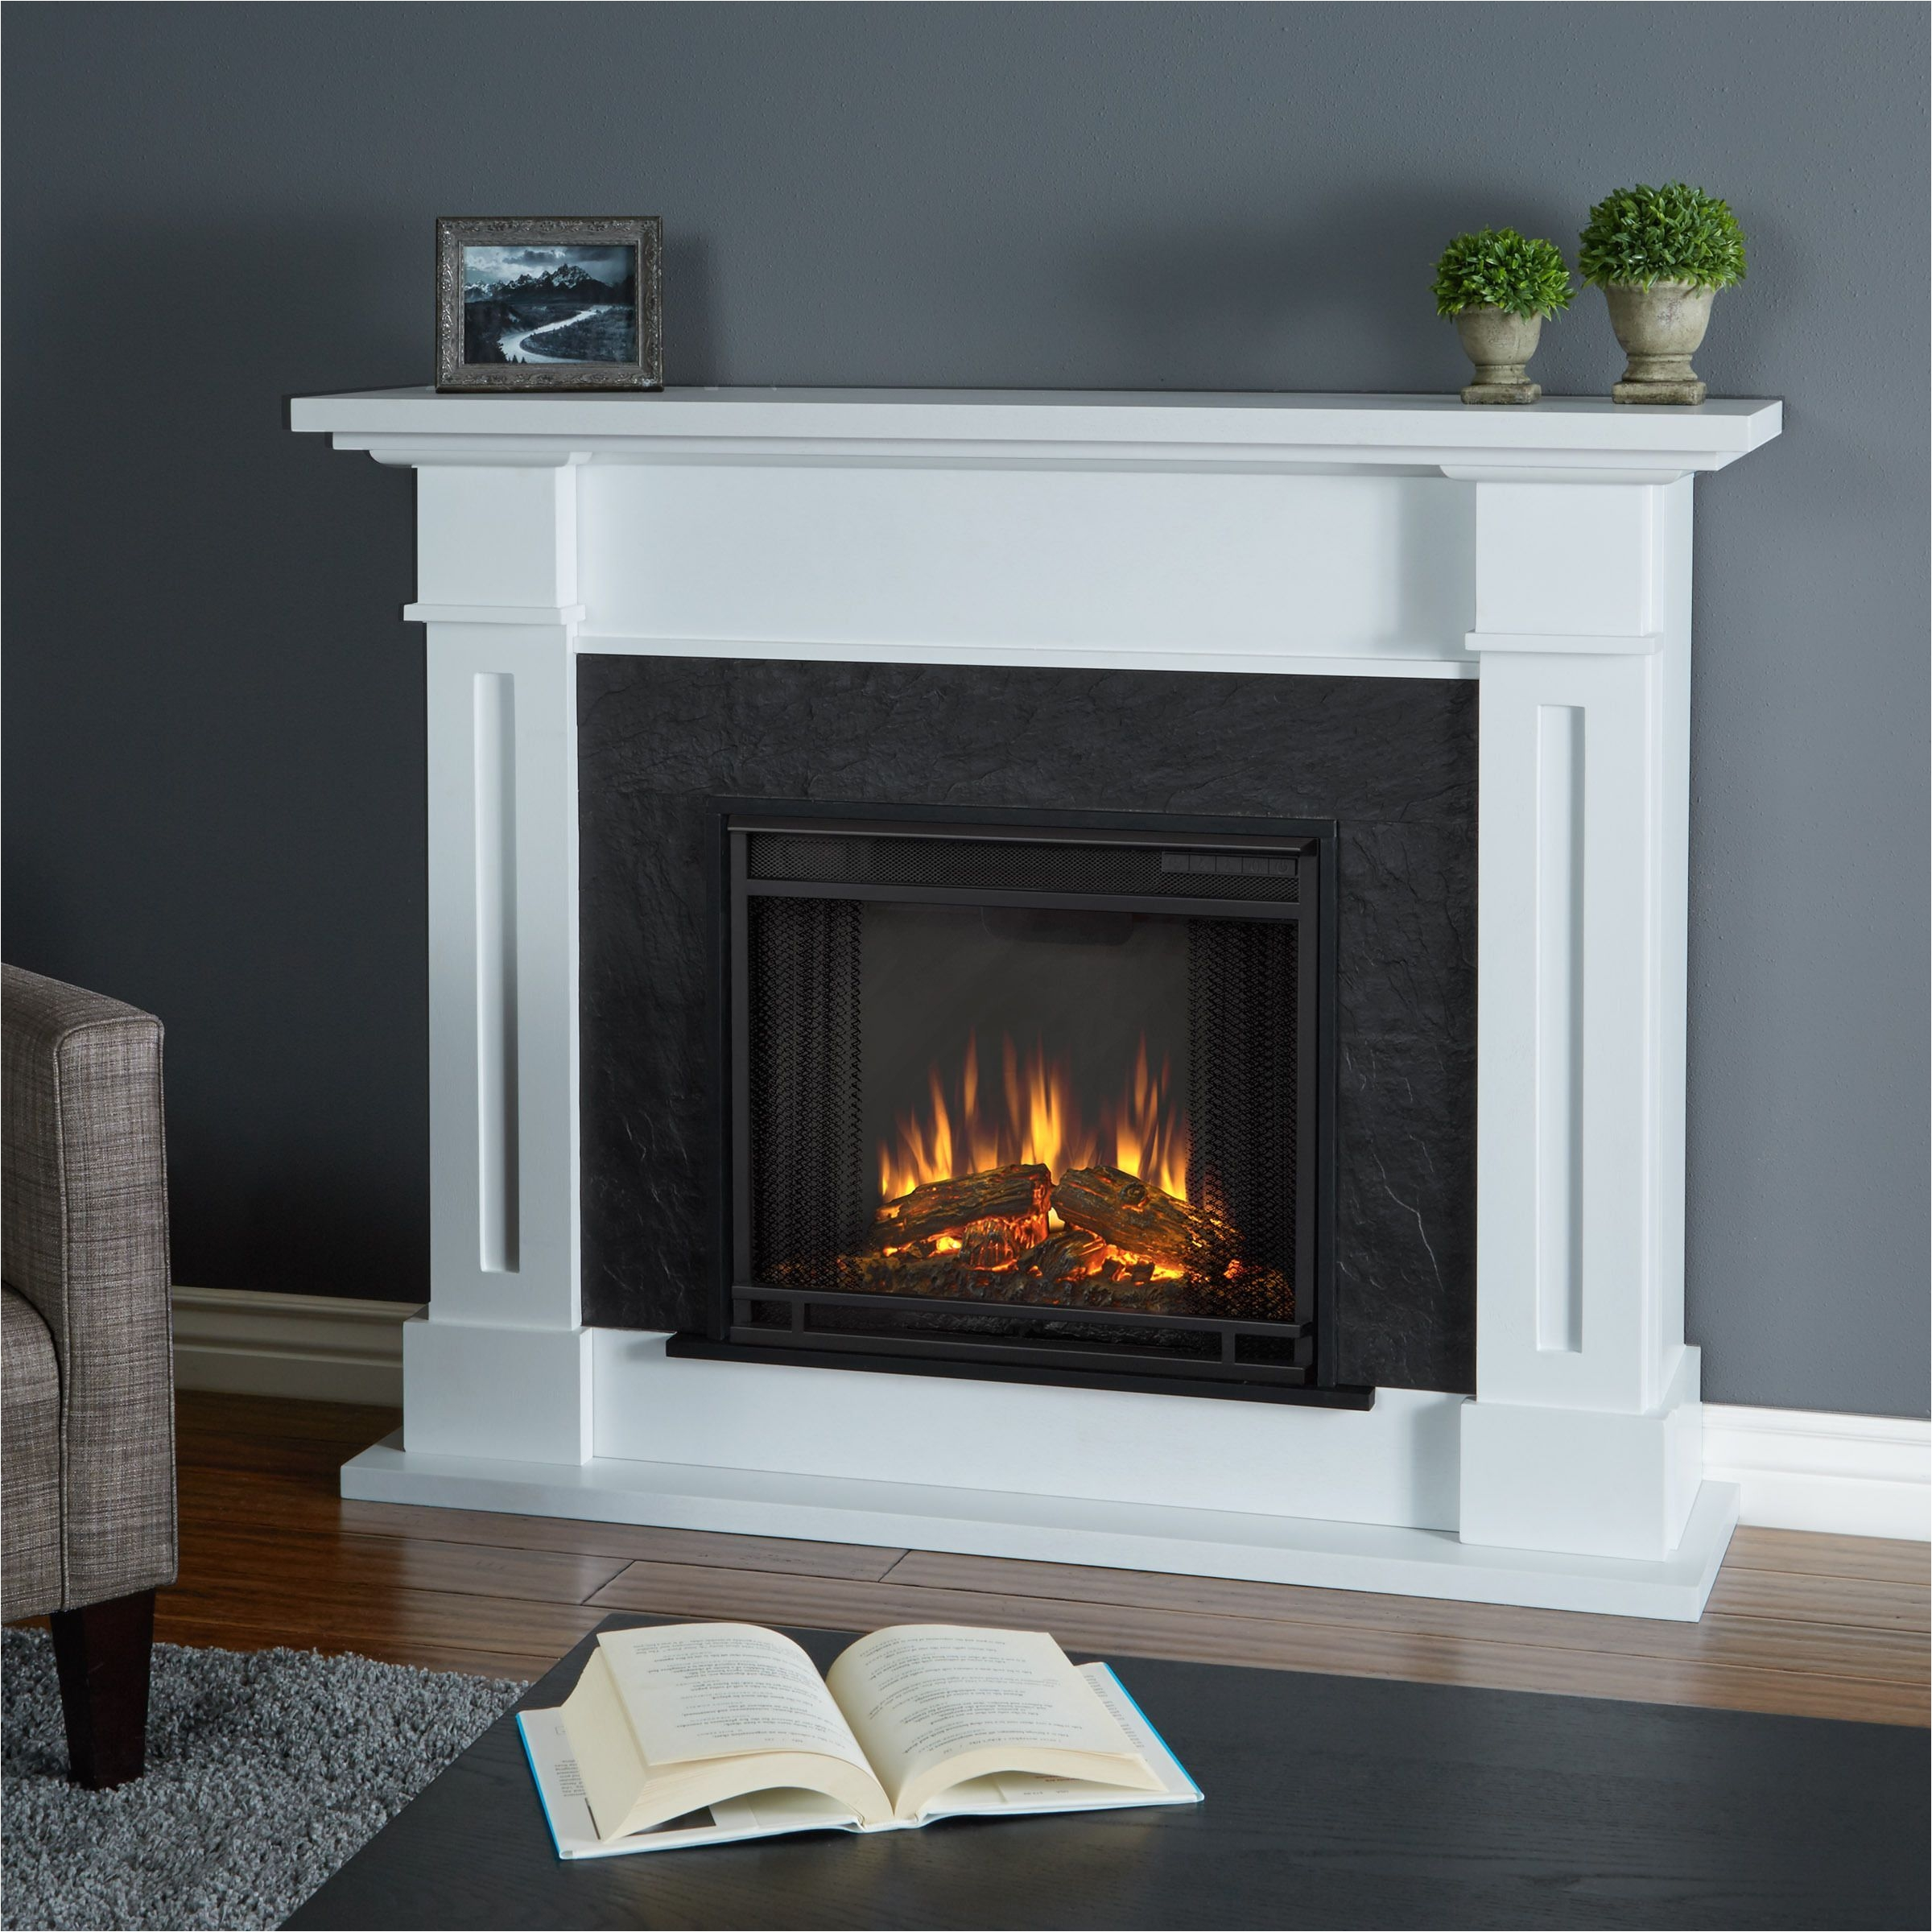 fake fire light for fireplace exquisitely light and warm your home with this real flame fireplace of fake fire light for fireplace